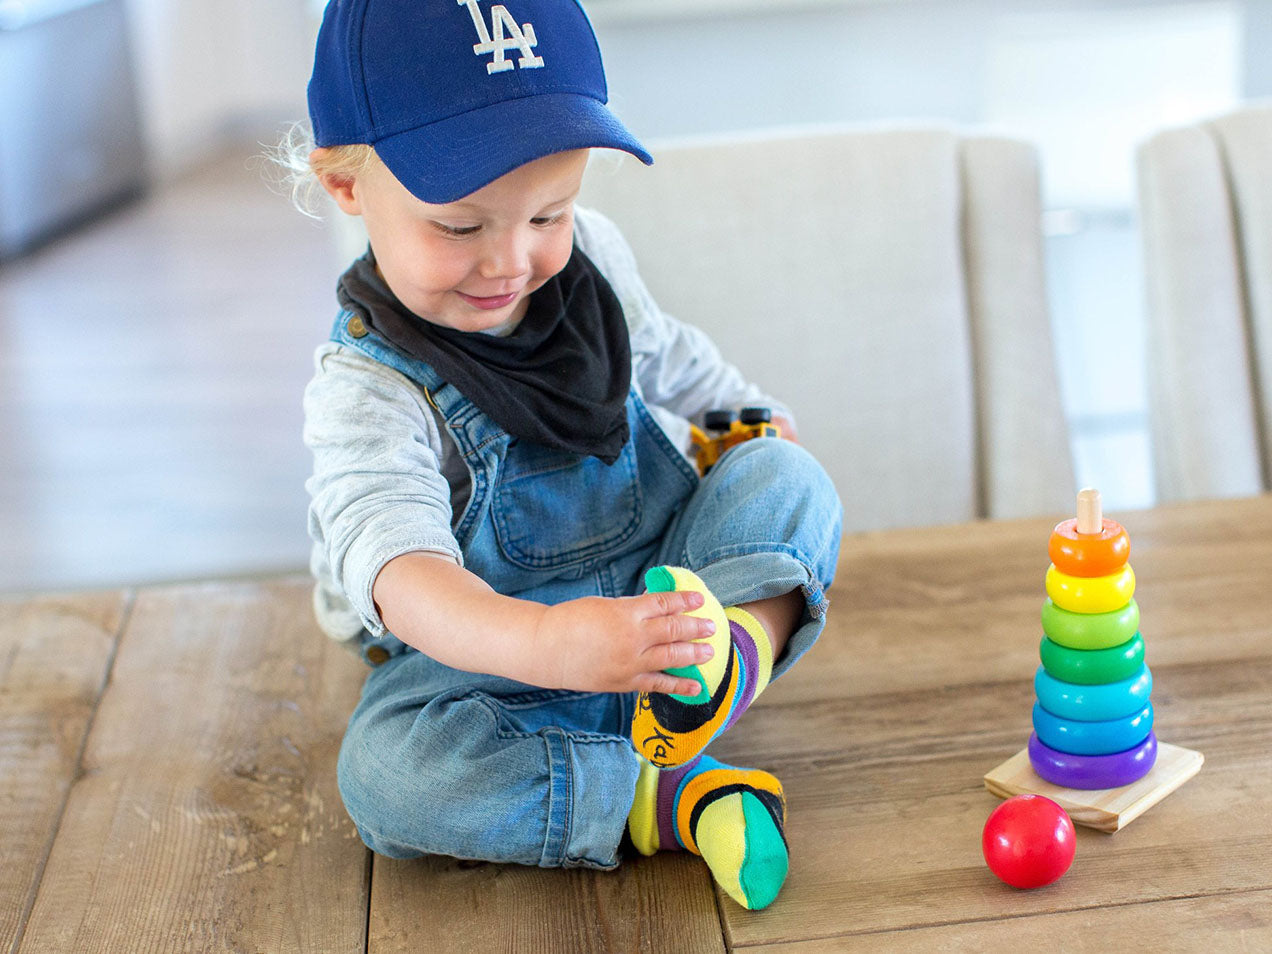 Sockabu picture kids with Dodgers hat and socks